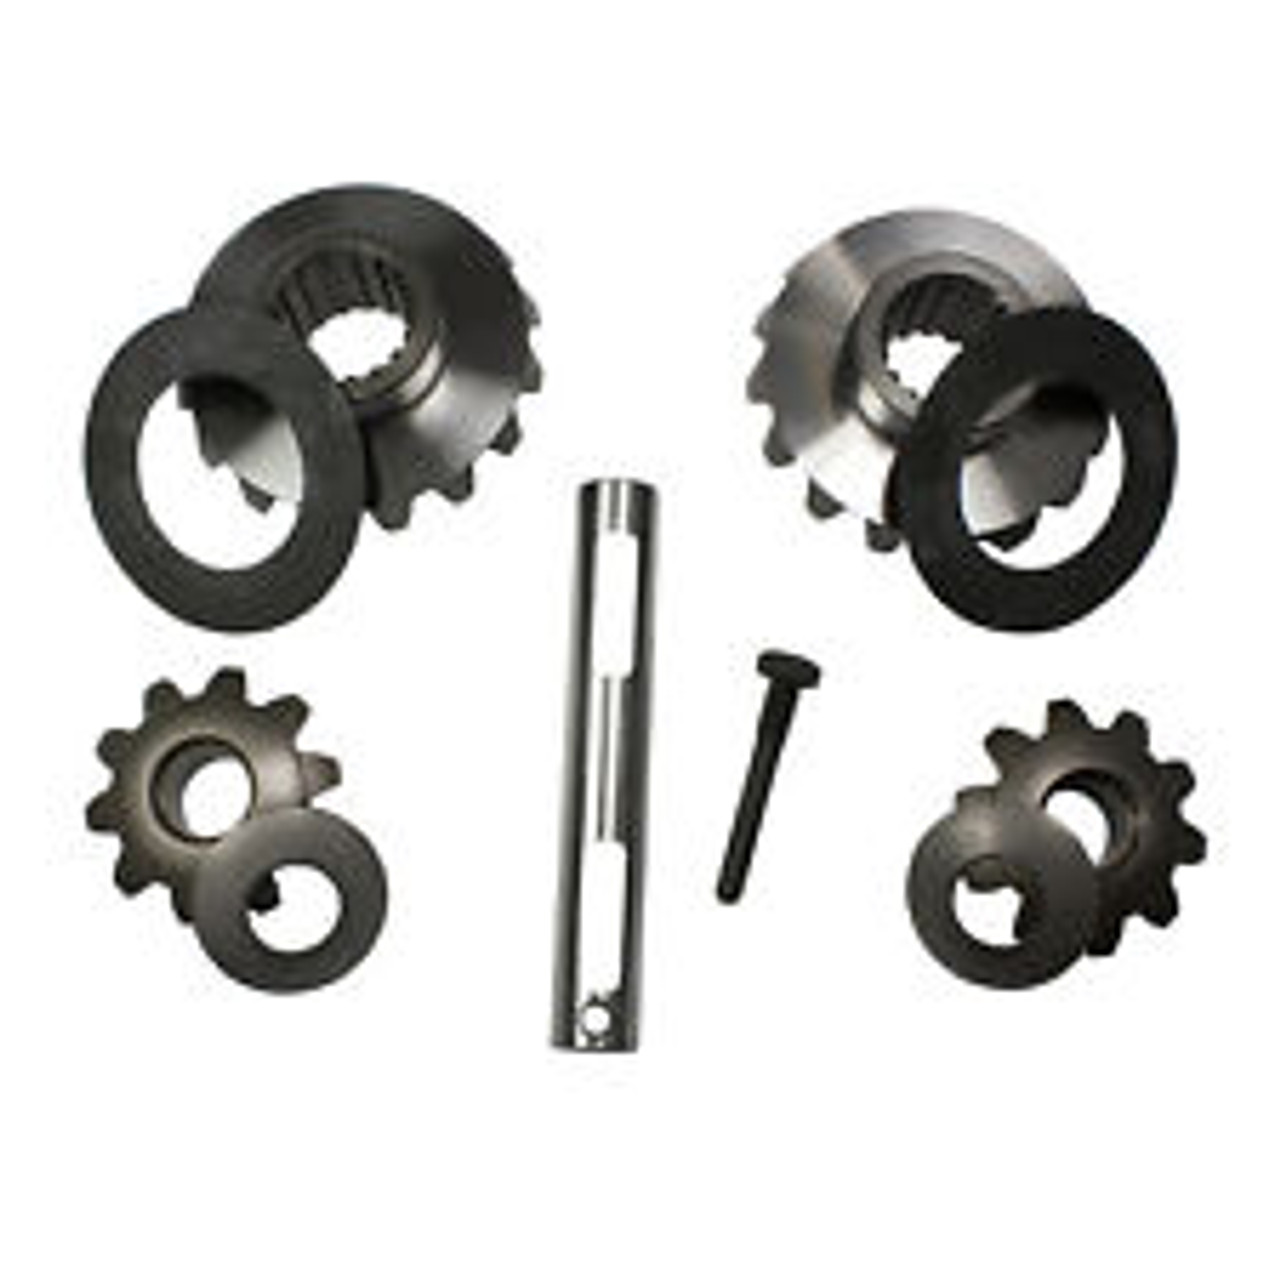 YKNYPKGM85S28, OPEN SPIDER GEAR KIT FOR 96 AND OLDER 8.5 GM REAR AXLE